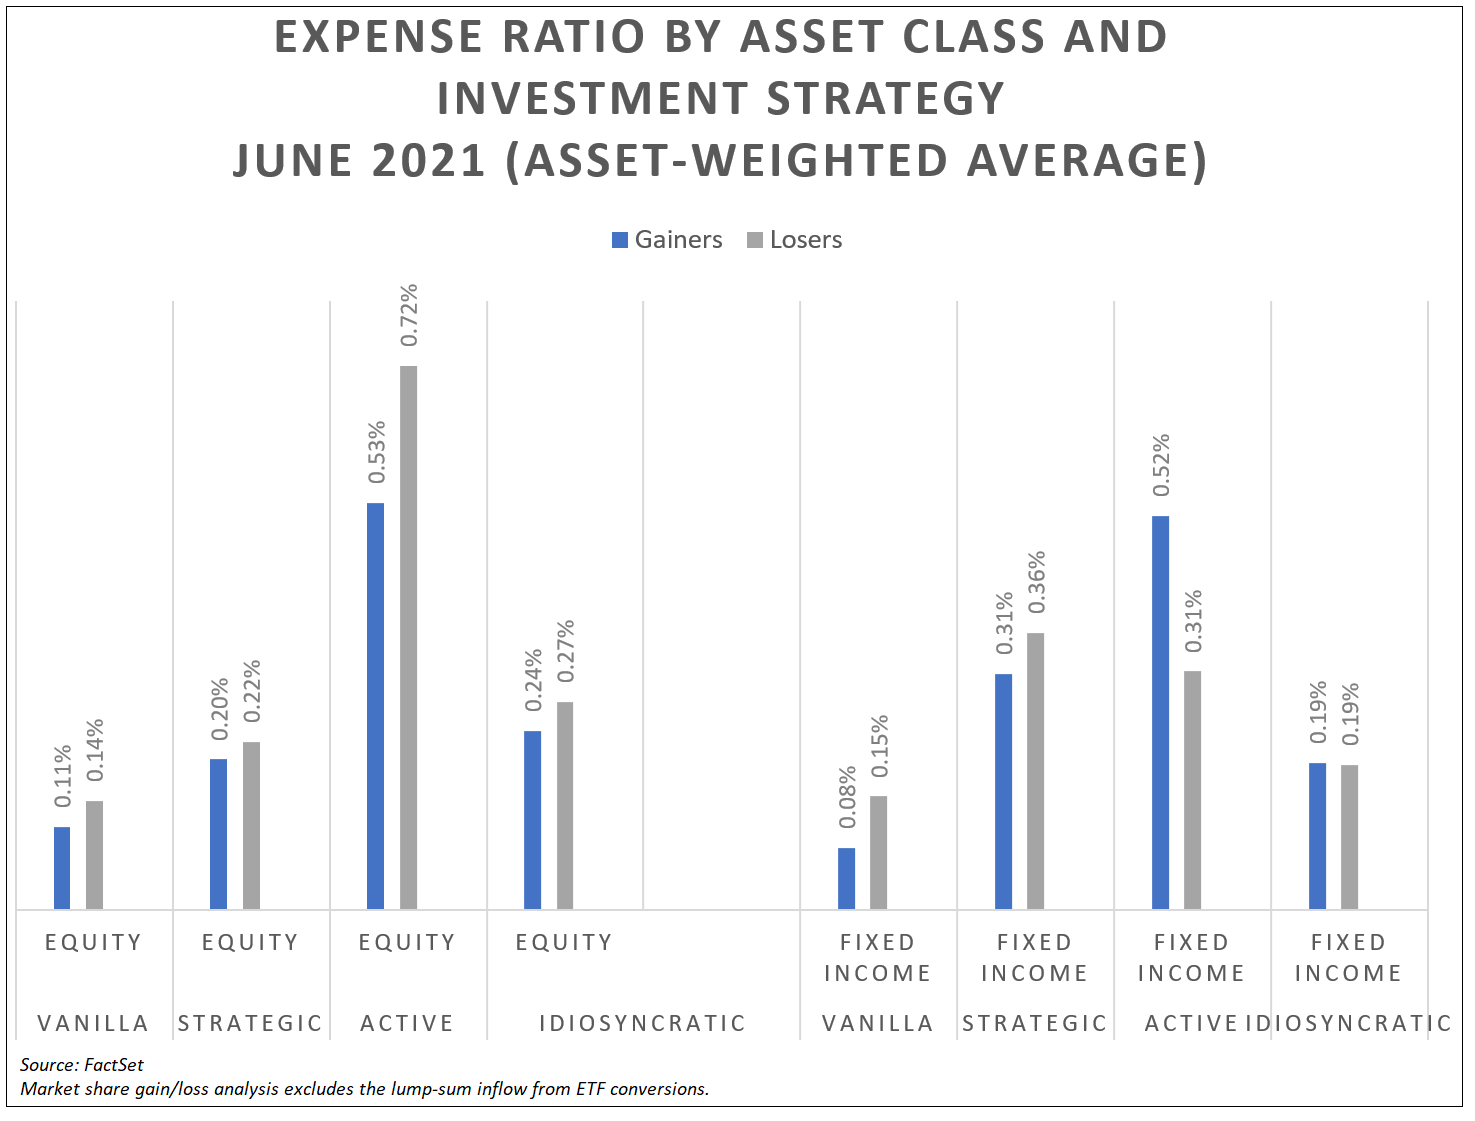 expense-ratio-by-asset-class-and-investment-strategy-june-2021